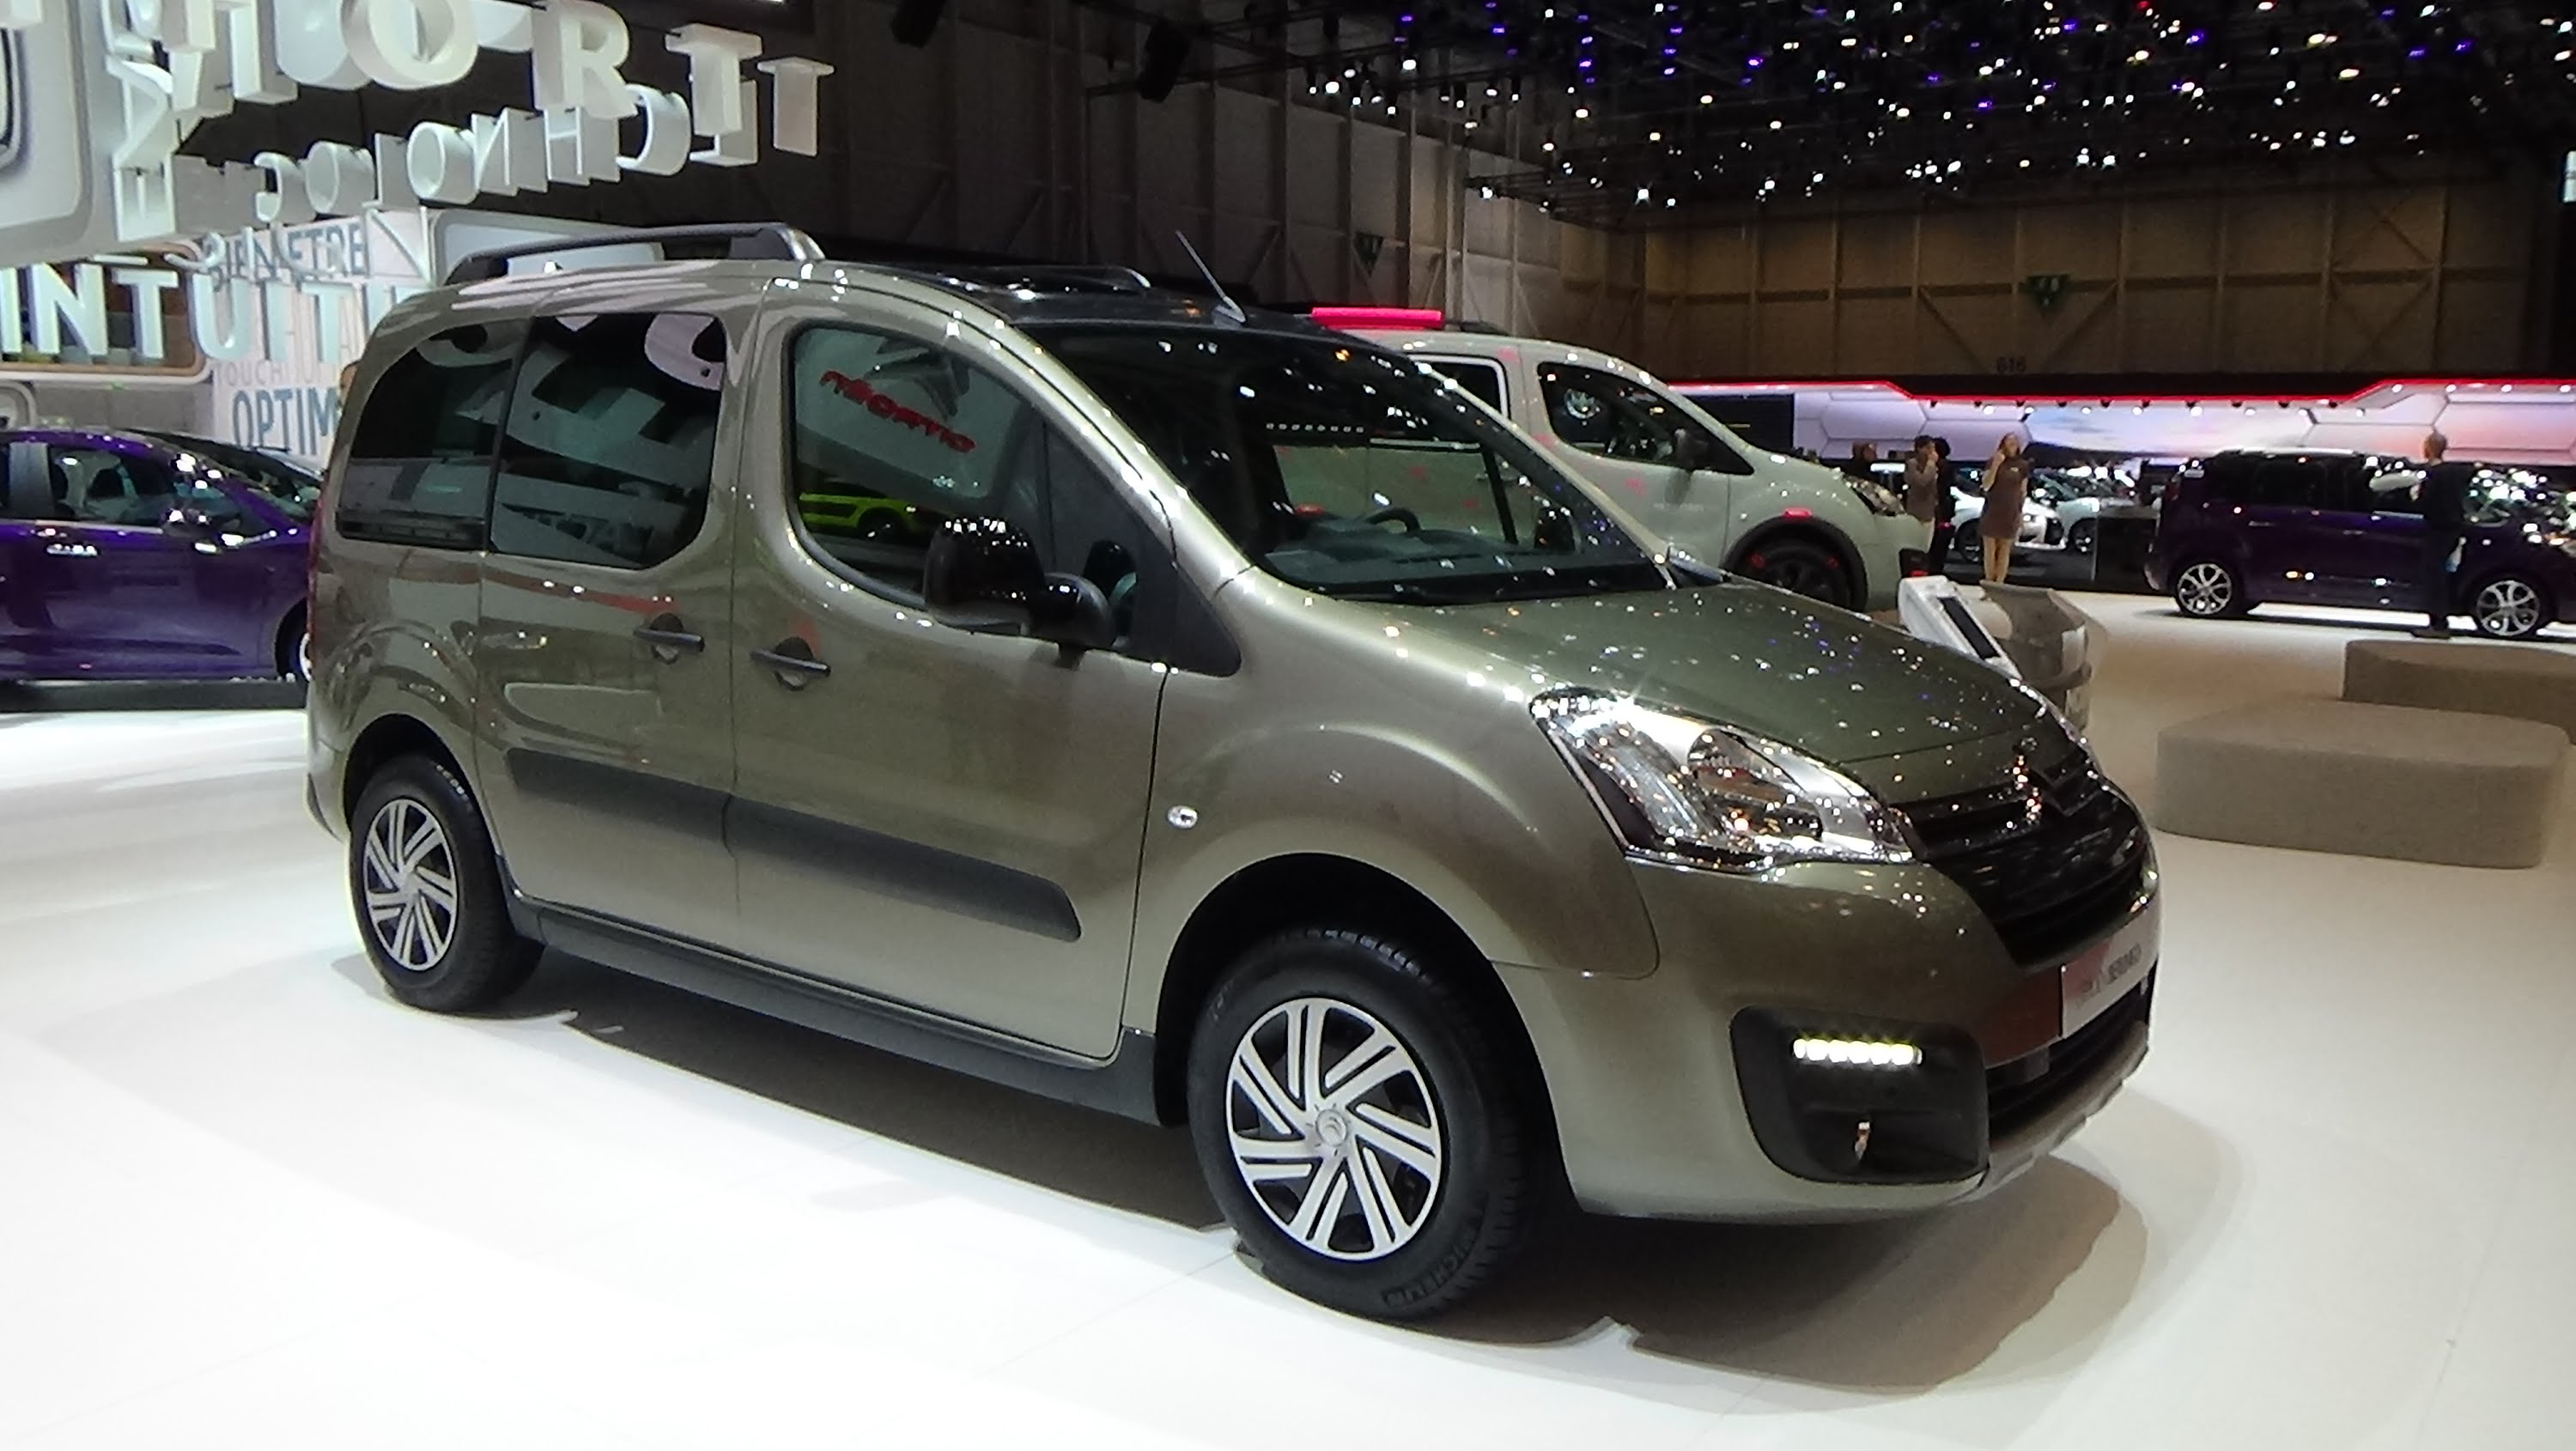 Citroen Berlingo II Restyling 2 2015 - now Compact MPV #4